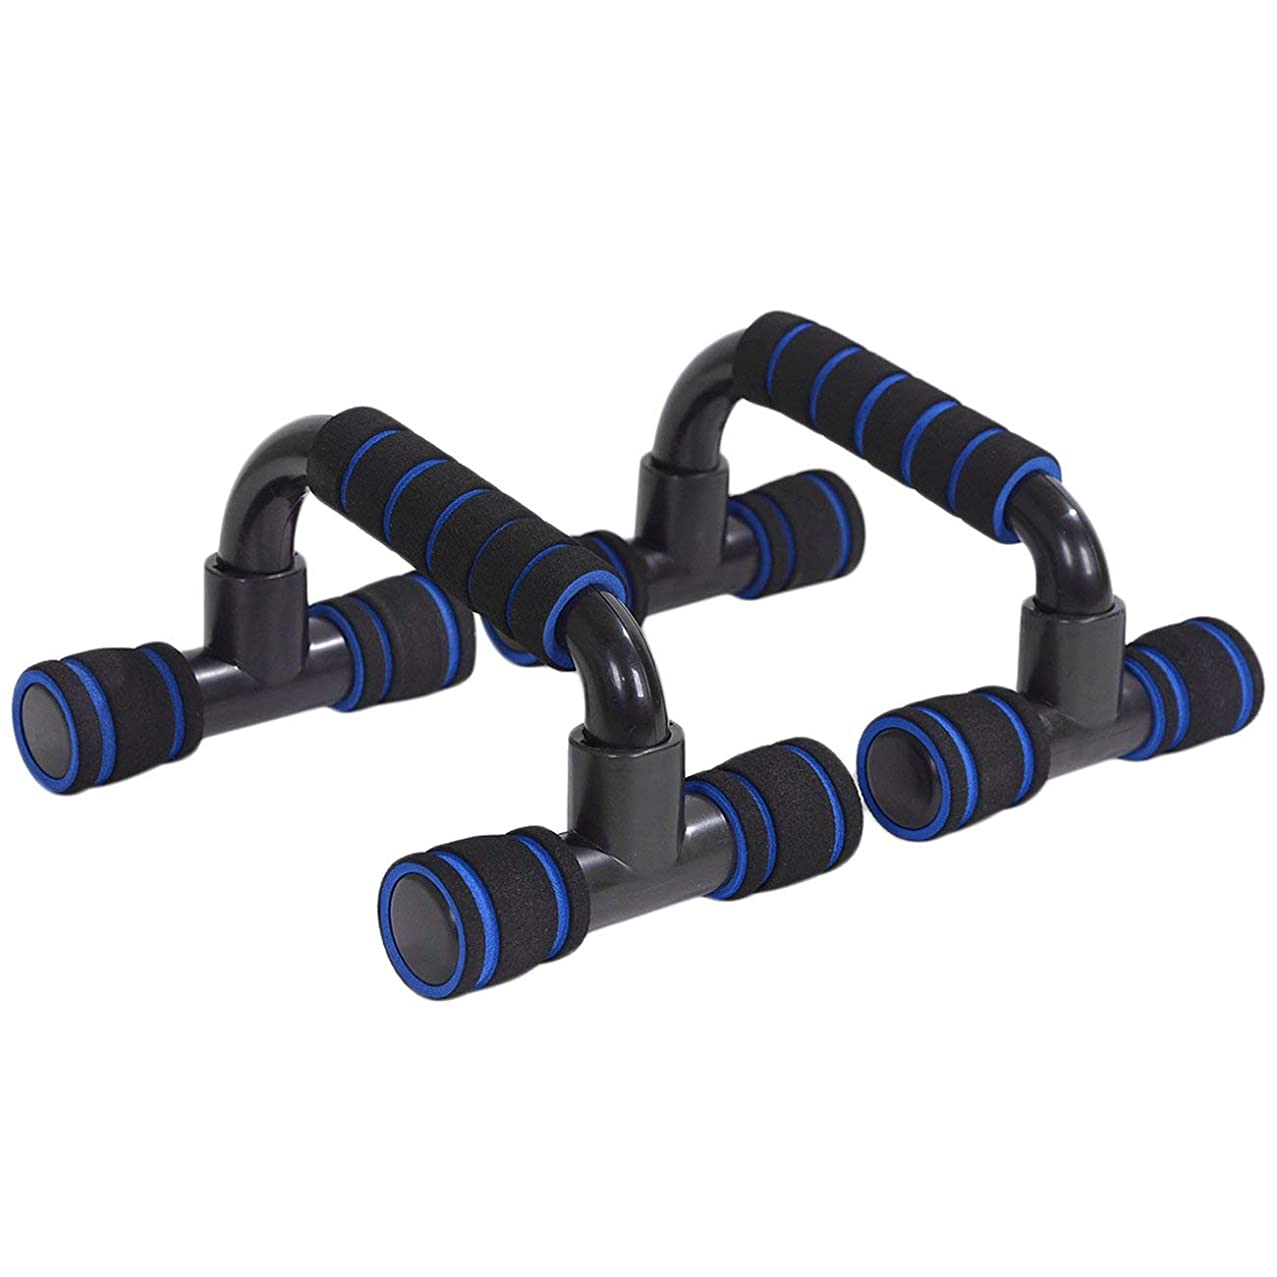 FayOK New Push Up Bars Stand Handle Exercise Training Pushup Chest Arms Tools